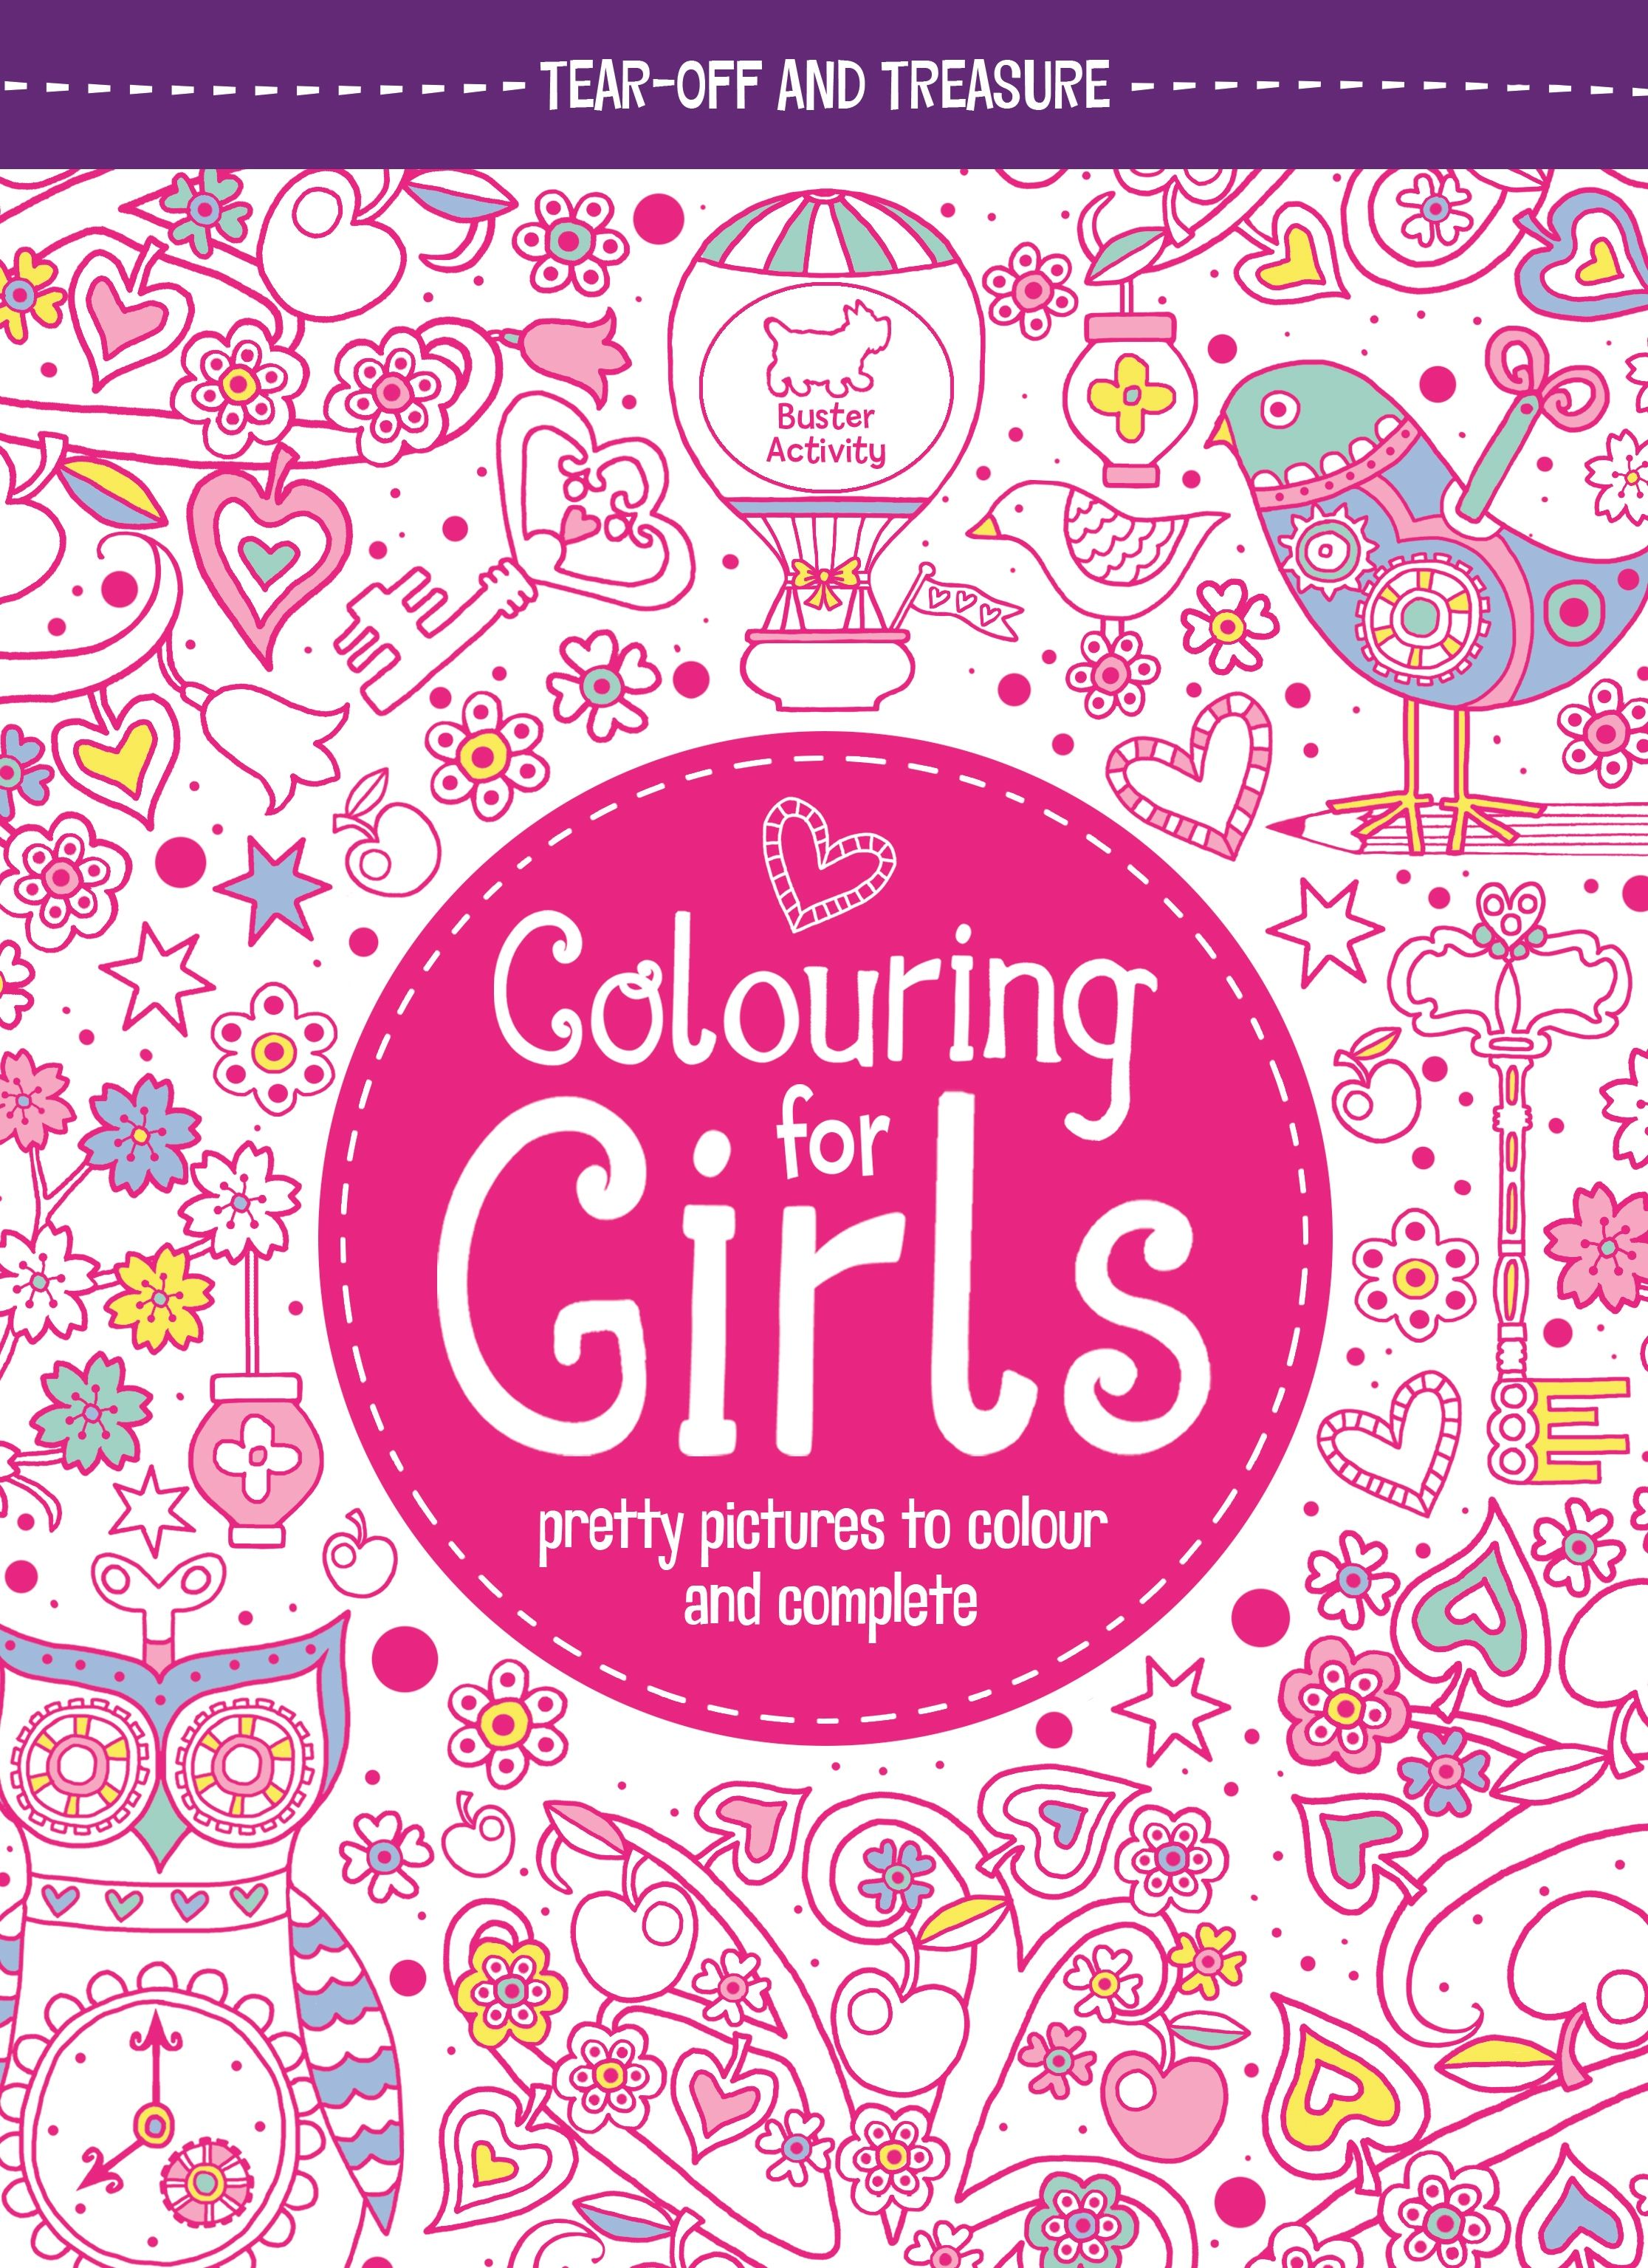 Colouring for Girls - beautiful drawings to colour in and perforated ...